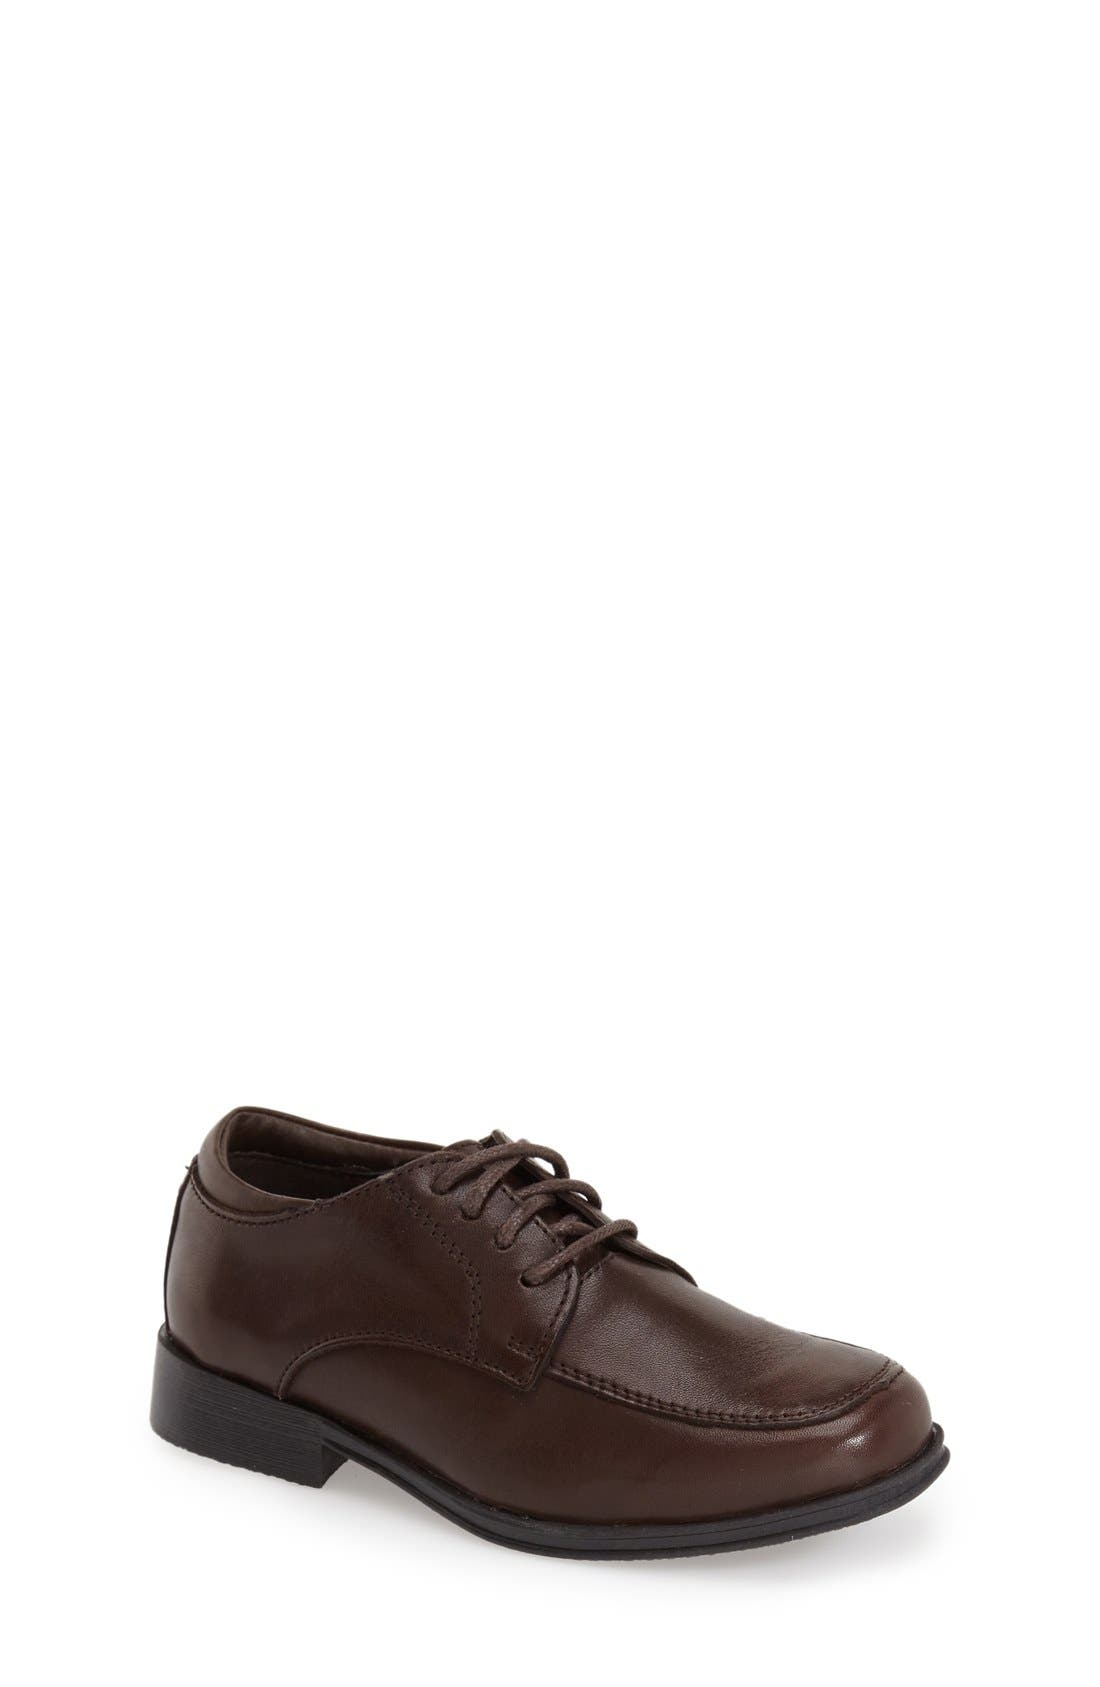 REACTION KENNETH COLE Kid Club Loafer, Main, color, DARK BROWN